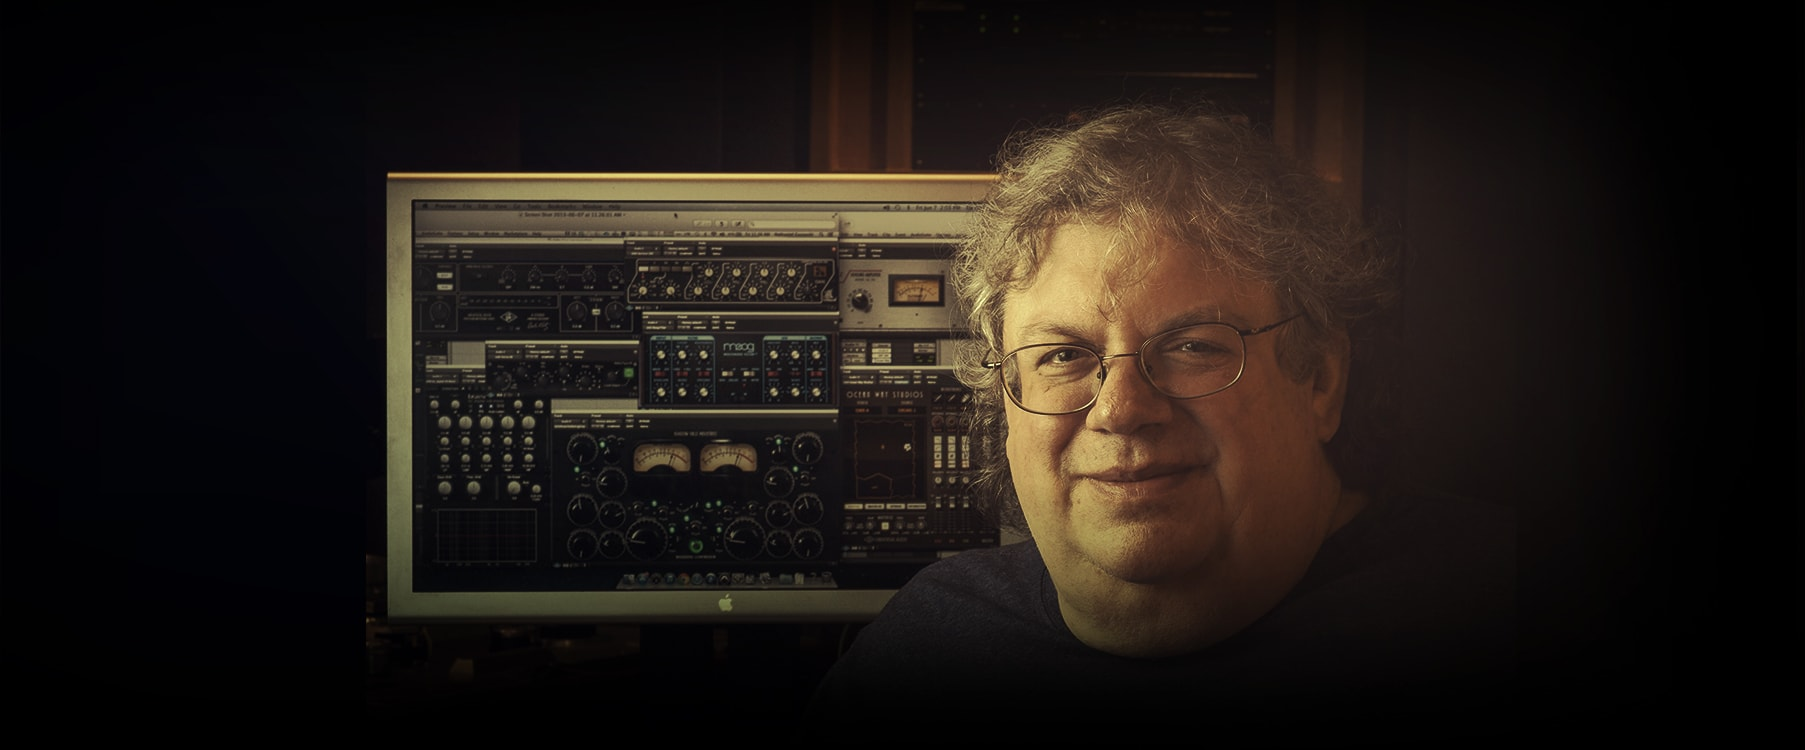 10 Questions with Mick Guzauski, the Mixer Behind Daft Punk, Pharrell & More